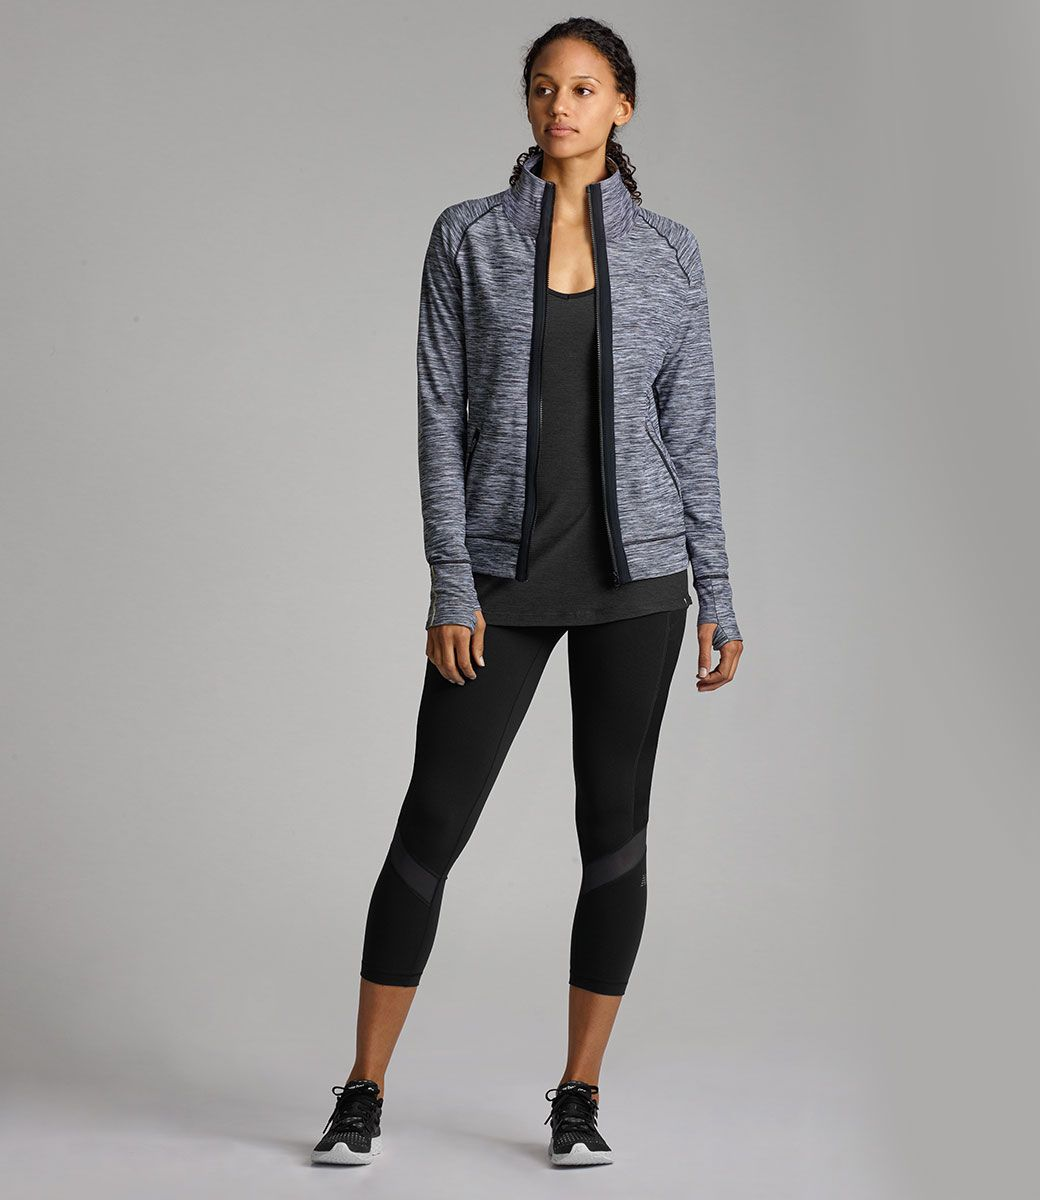 New Balance US Womens March High Intensity Workout and WX822,